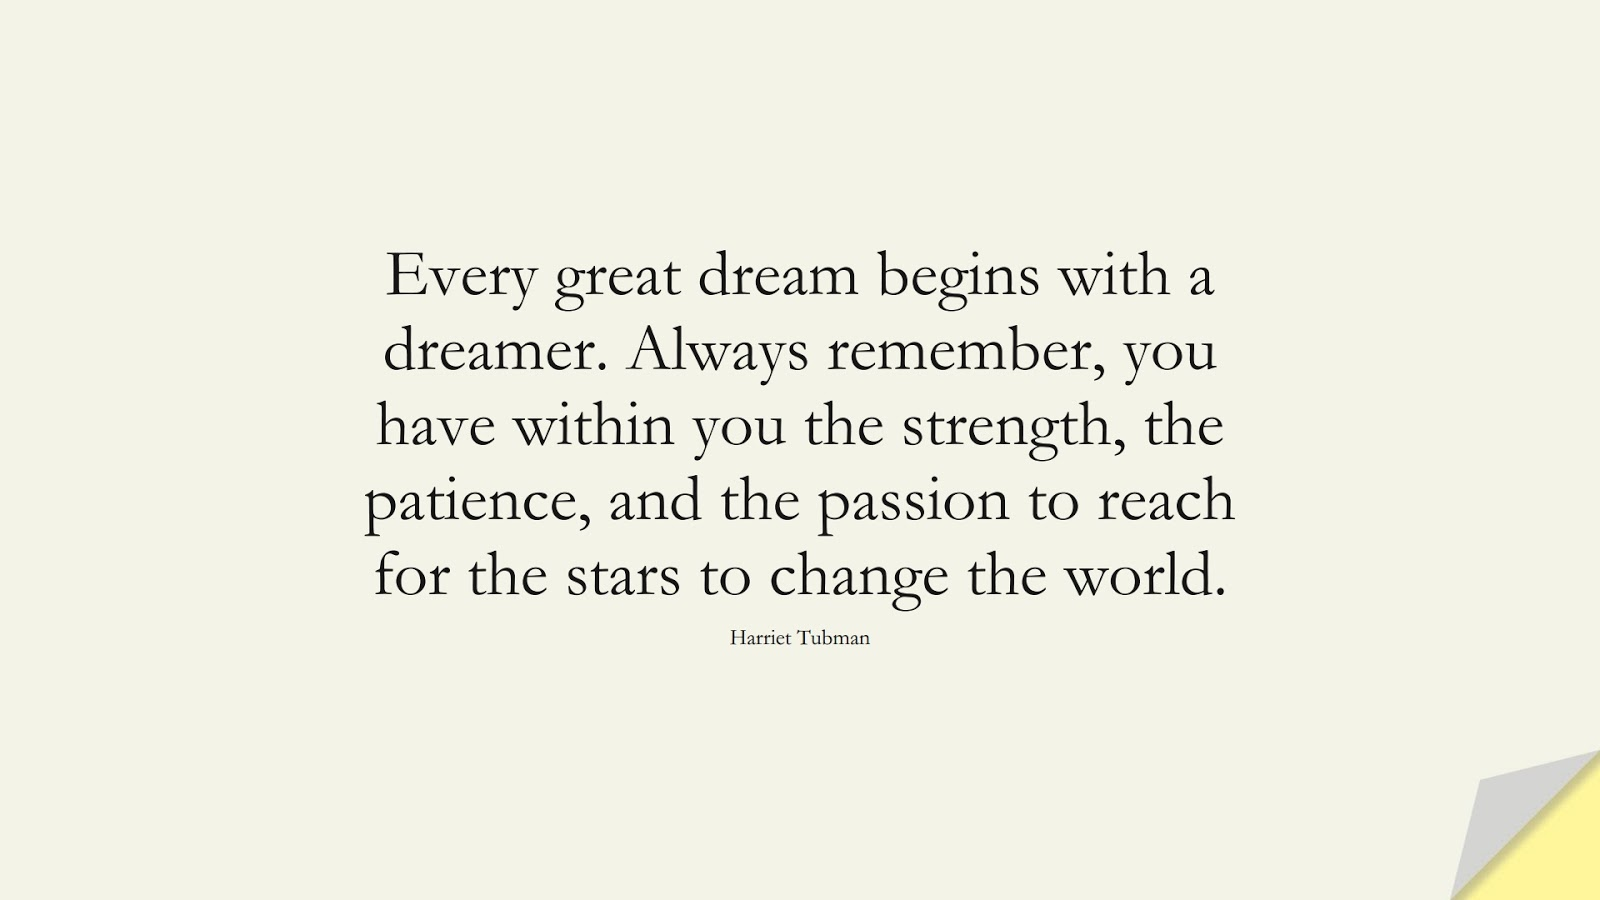 Every great dream begins with a dreamer. Always remember, you have within you the strength, the patience, and the passion to reach for the stars to change the world. (Harriet Tubman);  #ChangeQuotes